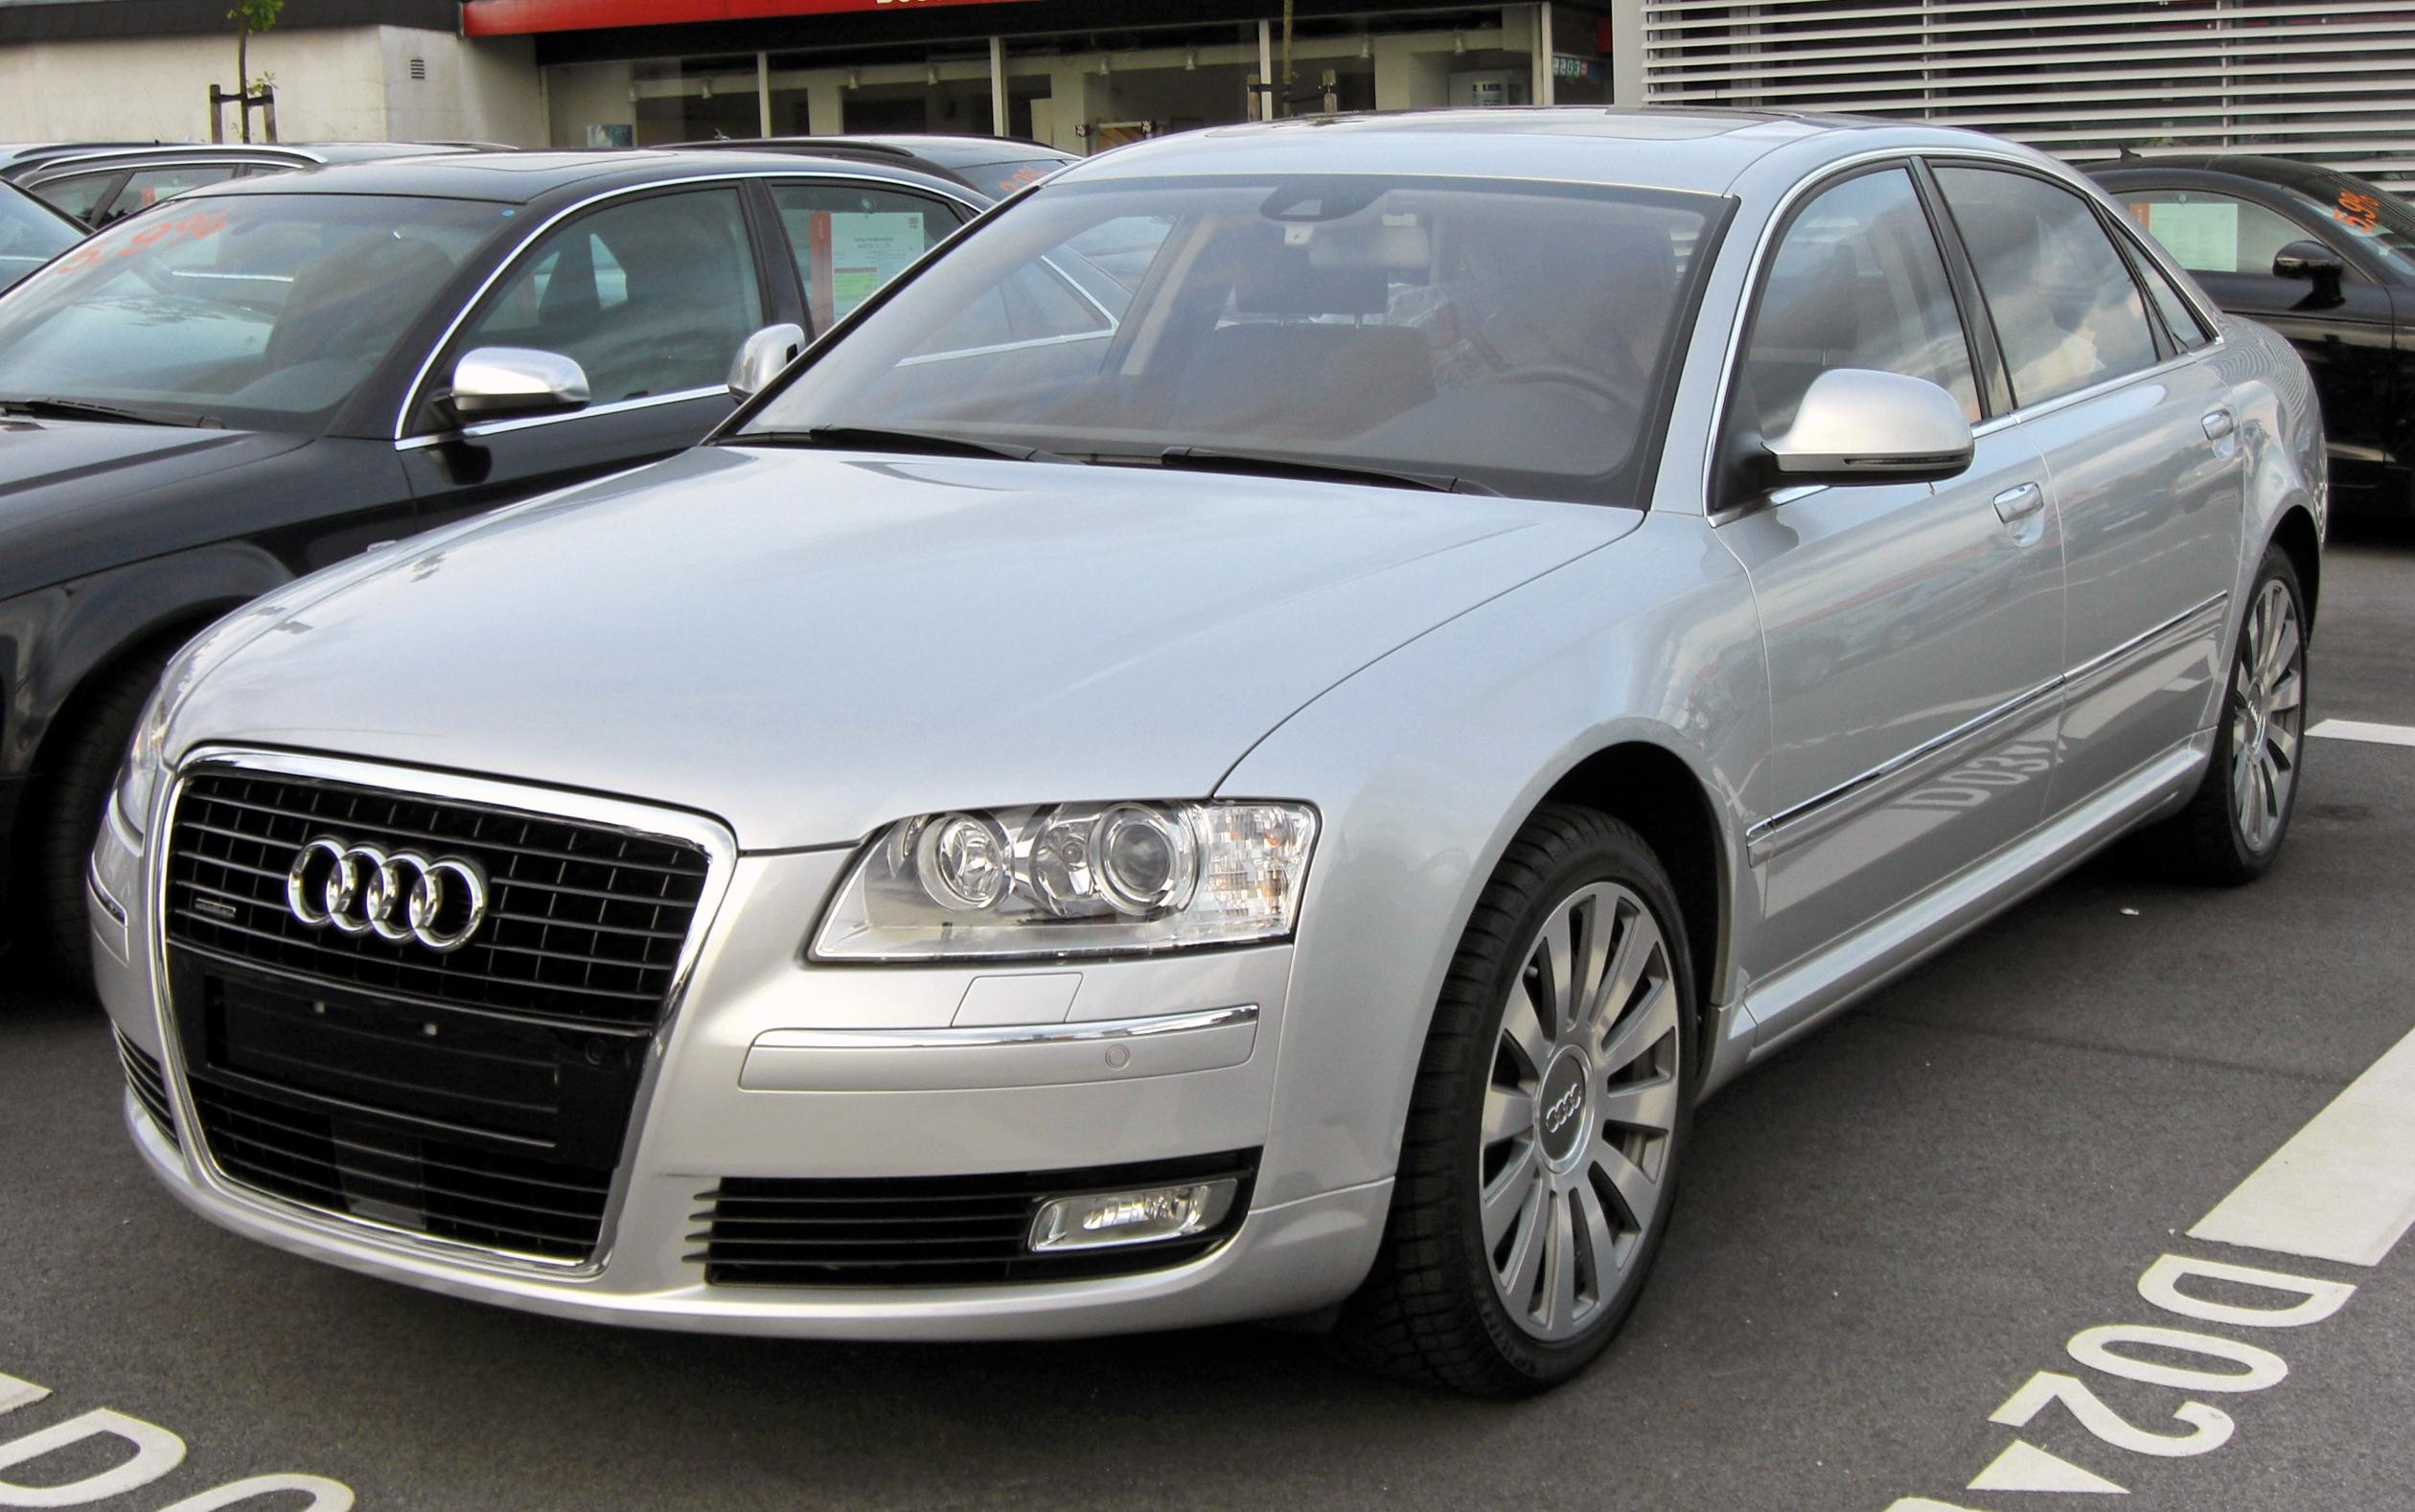 audi a8 (4e) 2007 pictures #2